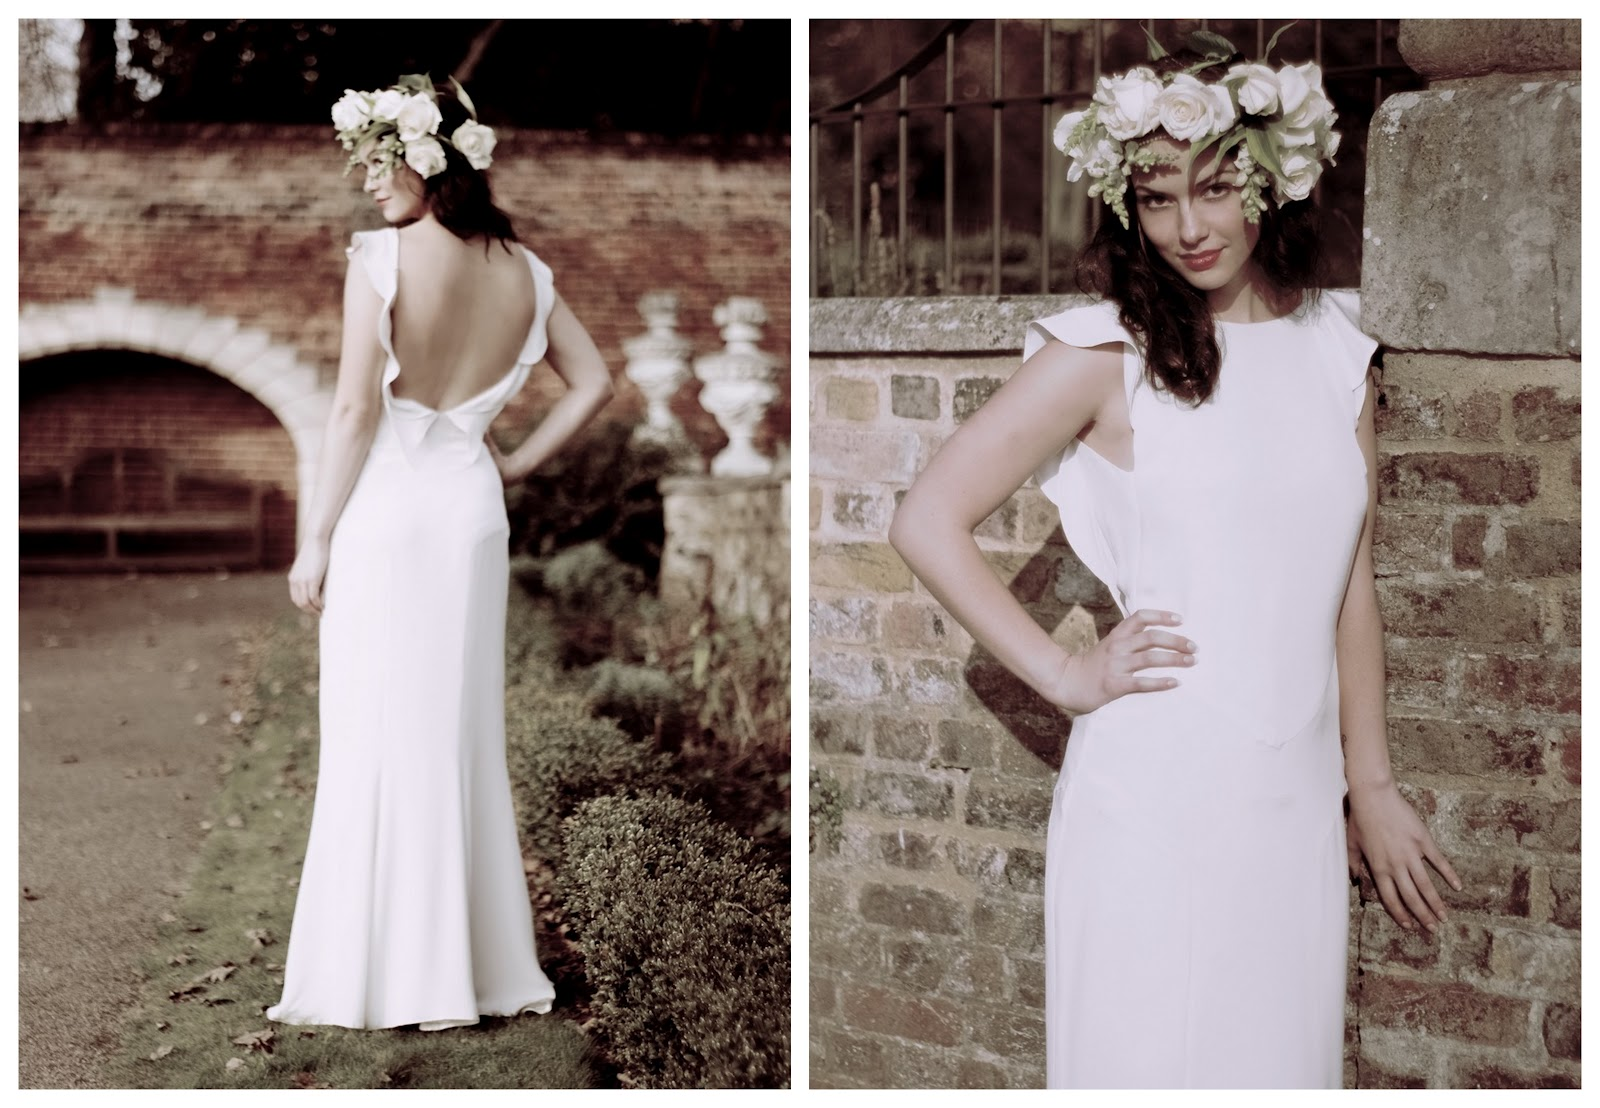 Reasonable but dreamy vintage style wedding dresses sunday 10 june 2012 ombrellifo Gallery